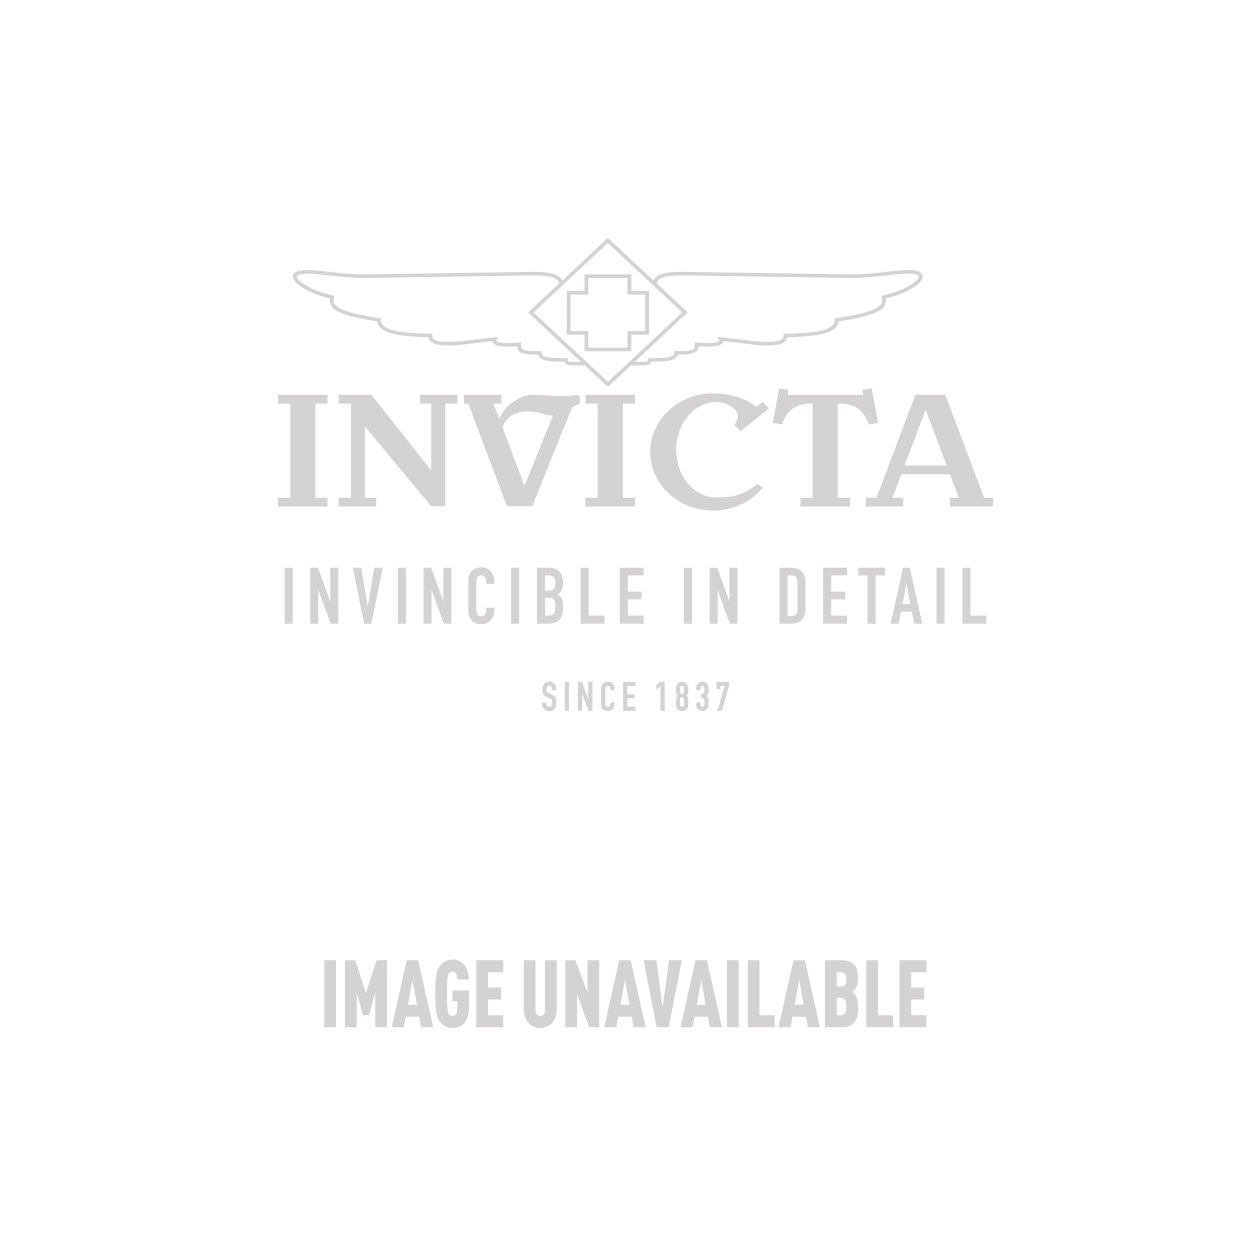 Invicta Coalition Forces Swiss Movement Quartz Watch - Gold case with Gold tone Stainless Steel band - Model 90277